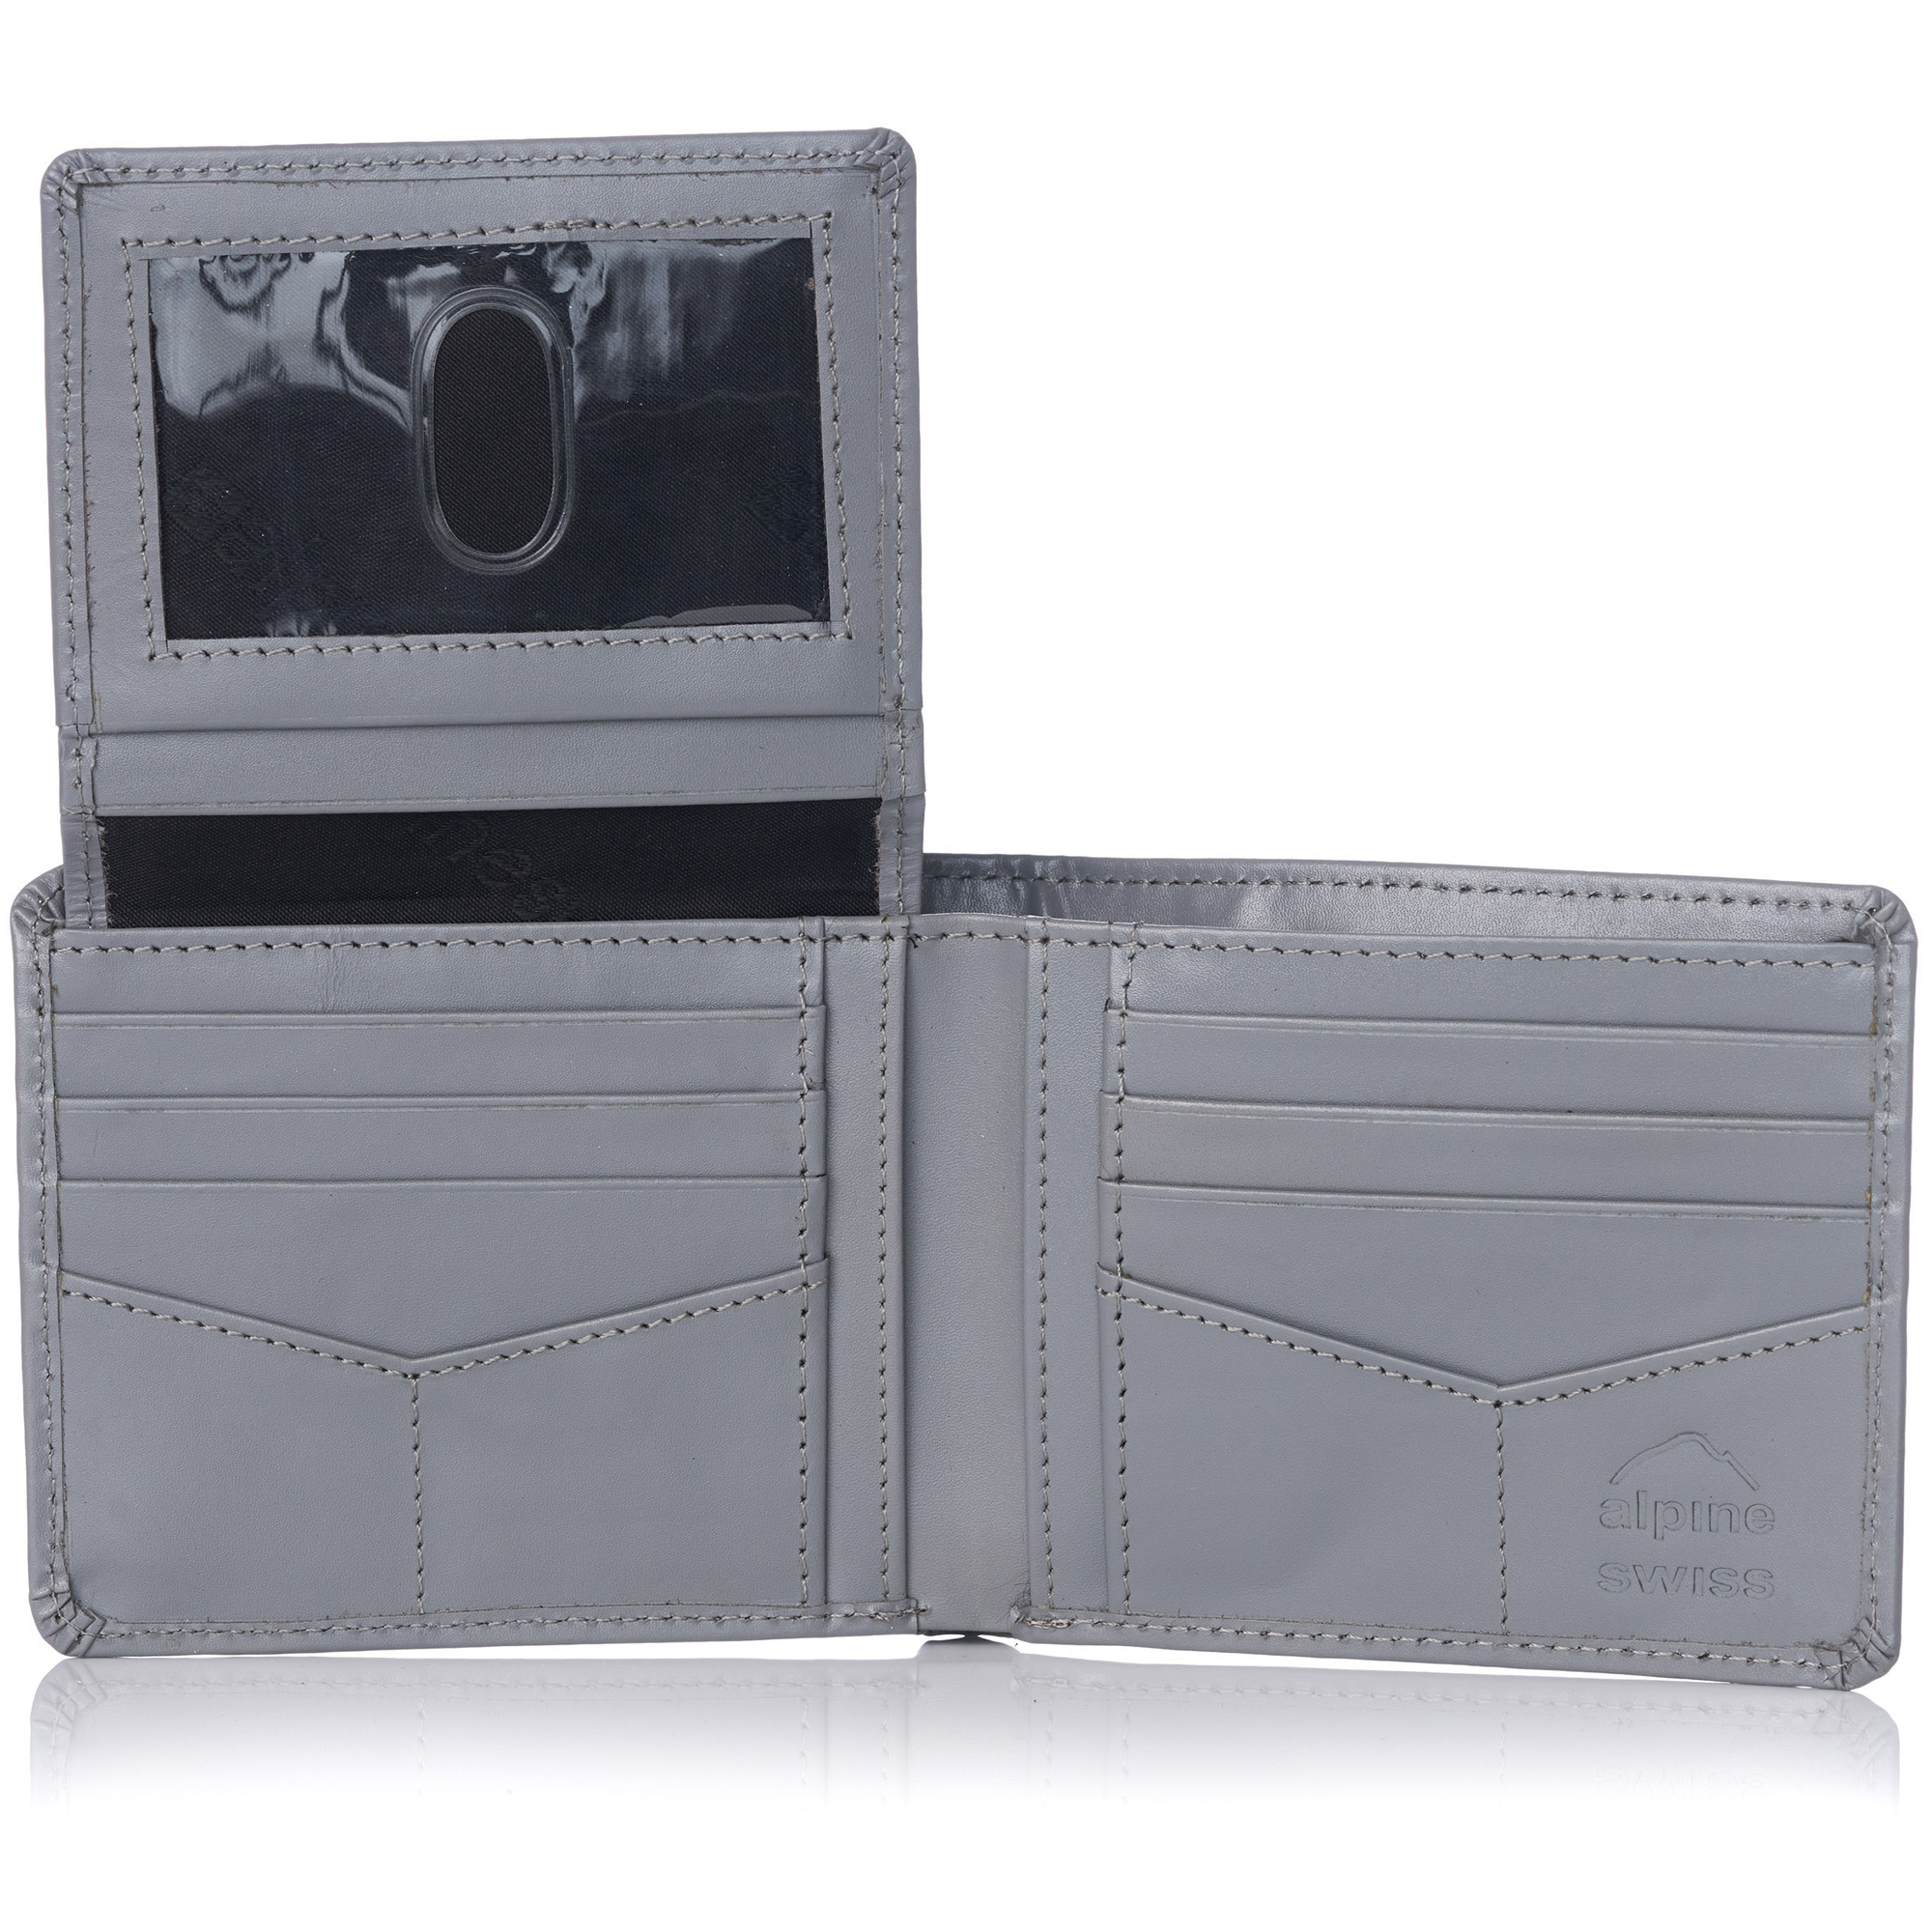 miniature 79 - Alpine-Swiss-RFID-Mens-Wallet-Deluxe-Capacity-Passcase-Bifold-Two-Bill-Sections